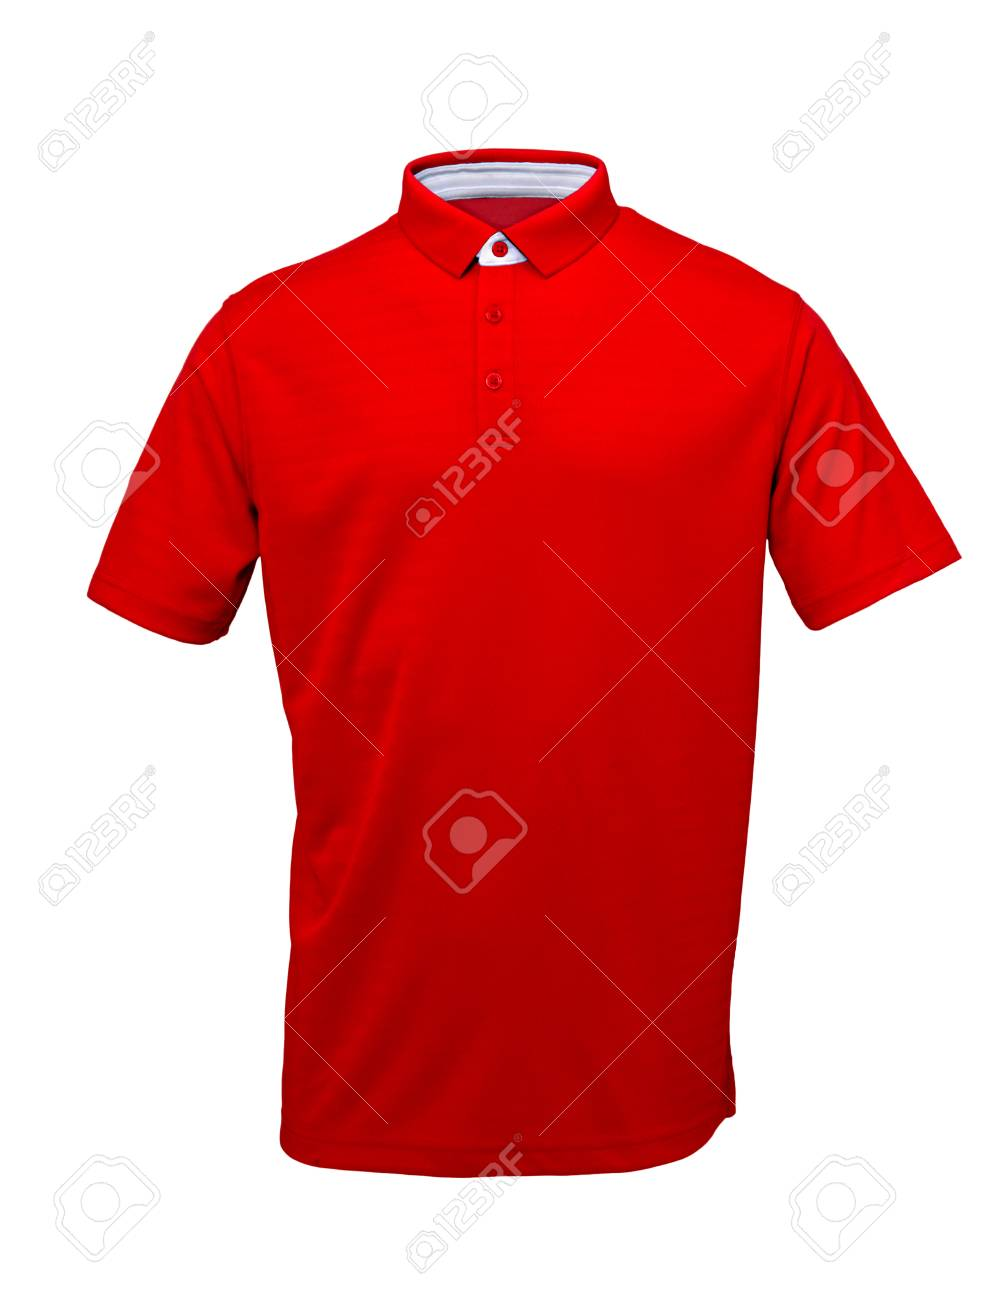 Red golf tee shirt with with white collar on white background - 74329297